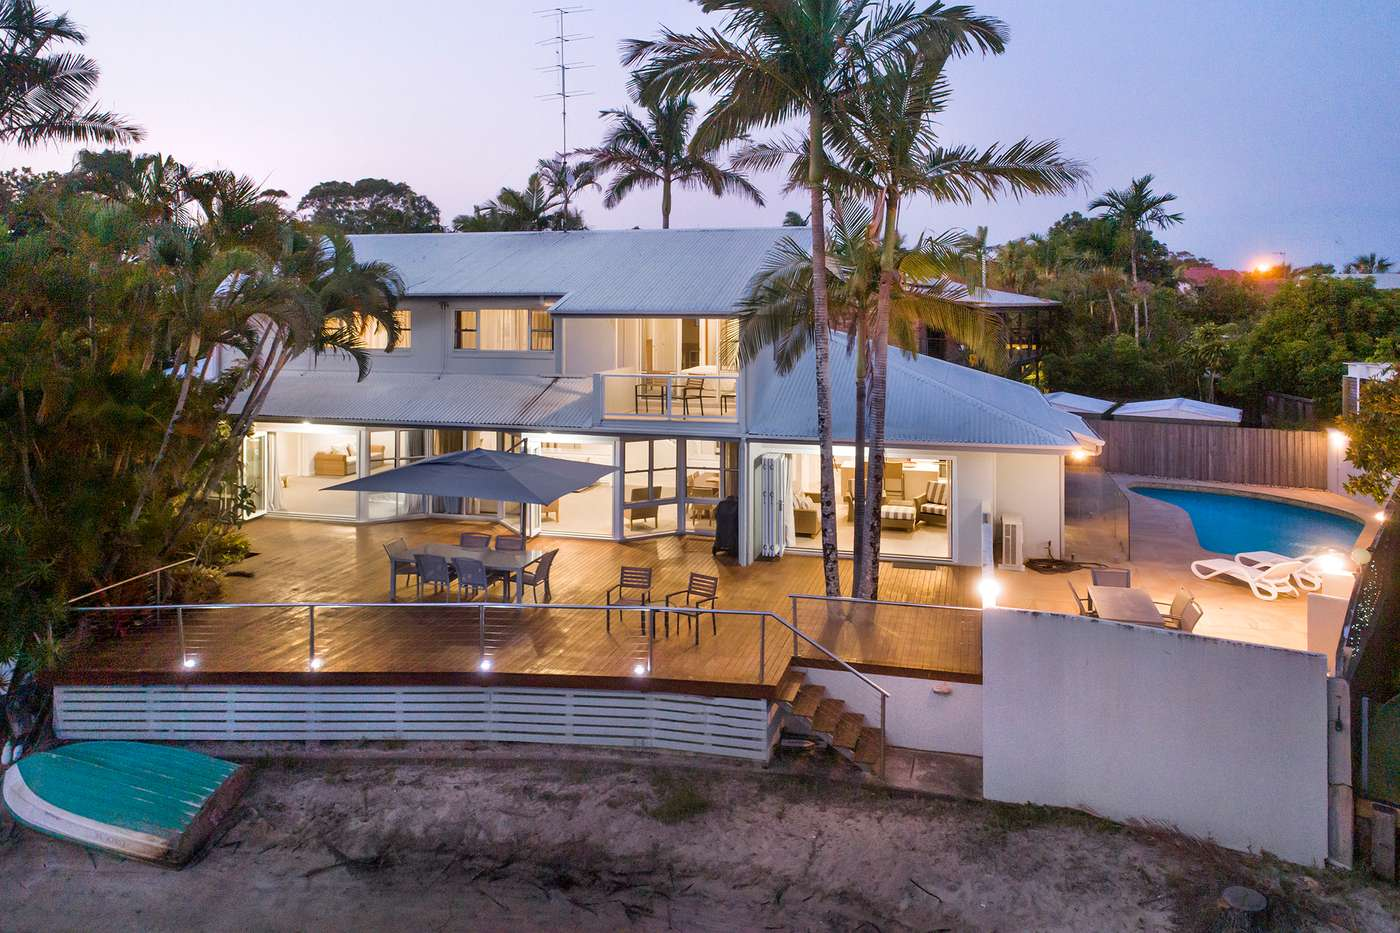 Main view of Homely house listing, 11 Key Court, Noosa Heads, QLD 4567